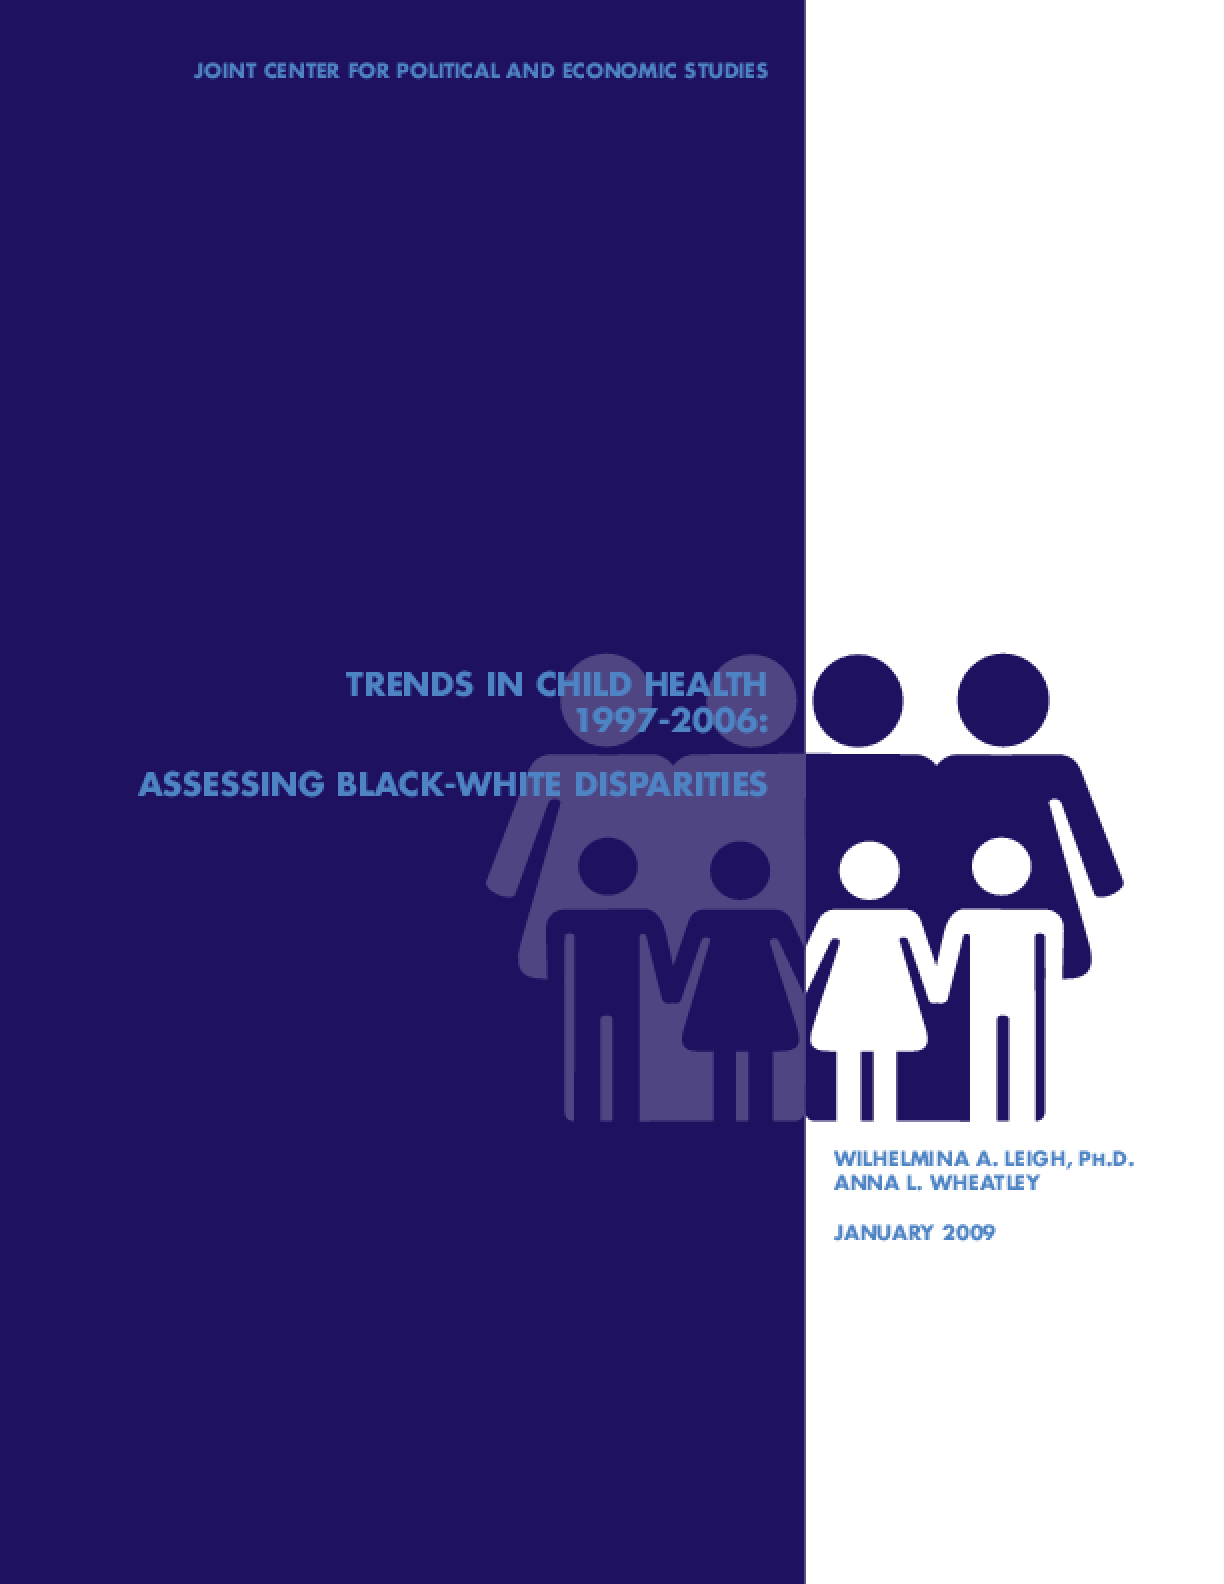 Trends in Child Health 1997-2006: Assessing Black-White Disparities